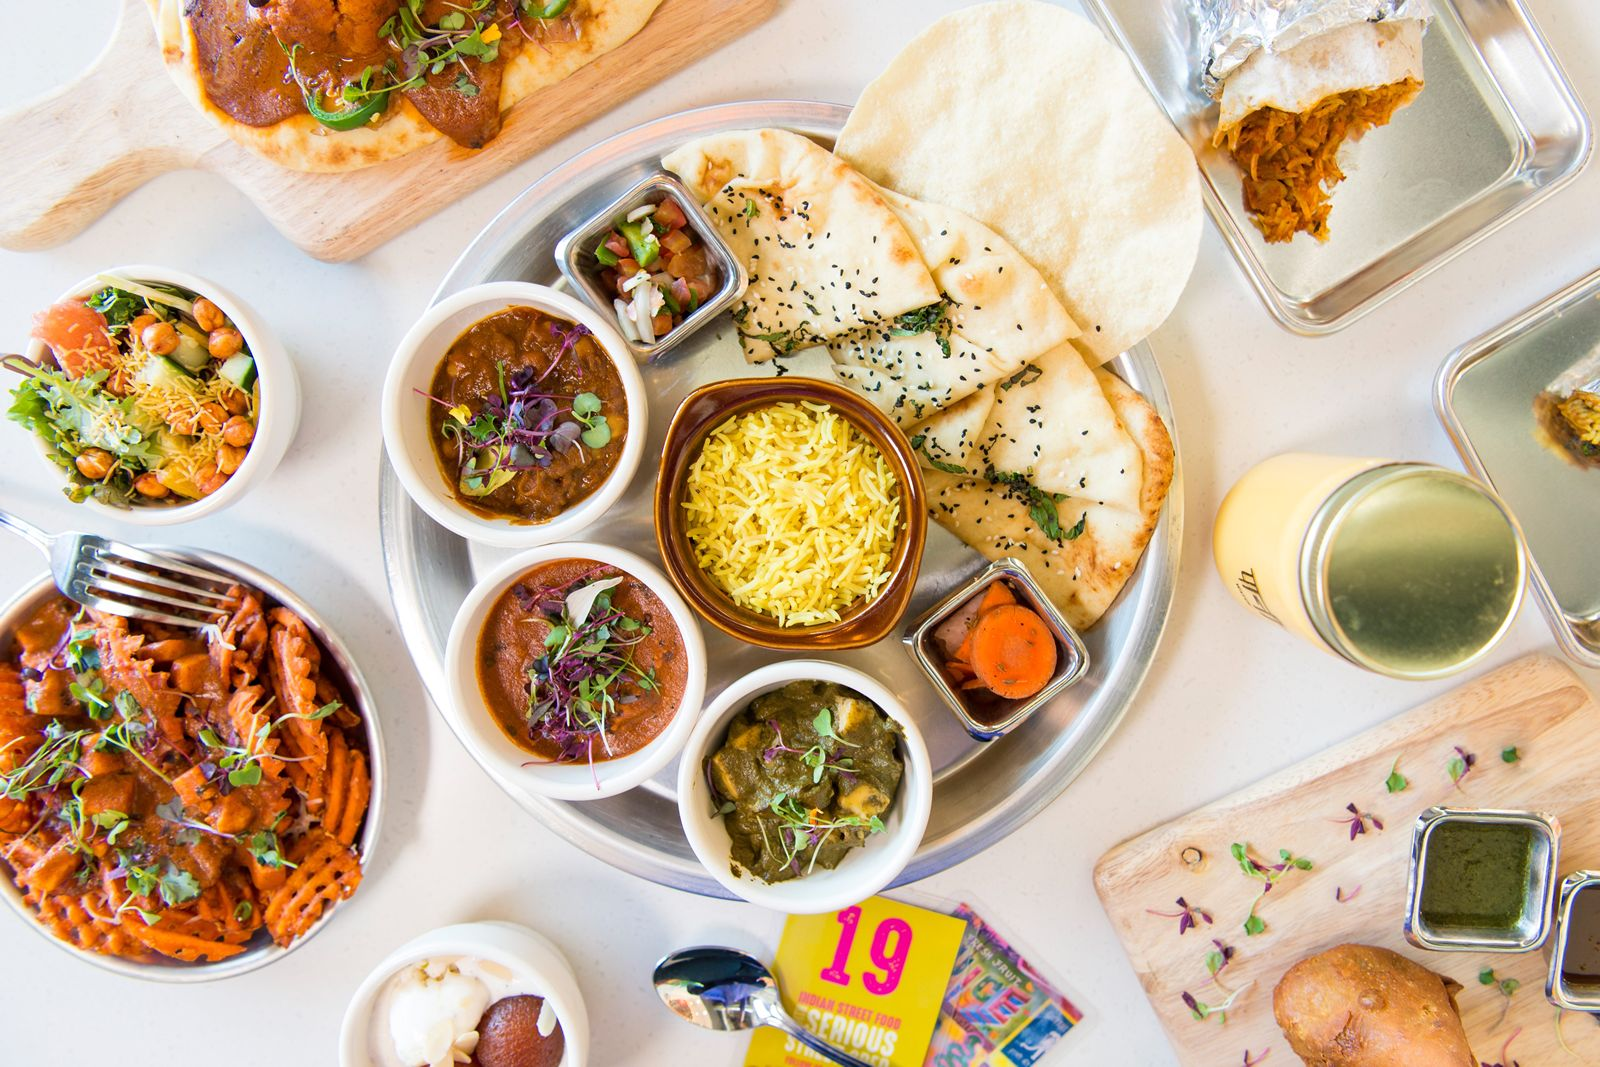 Curry Up Now will celebrate the Grand Opening of its first Southern California restaurant in Irvine at 922 Spectrum Center Drive on Wednesday, January 29.